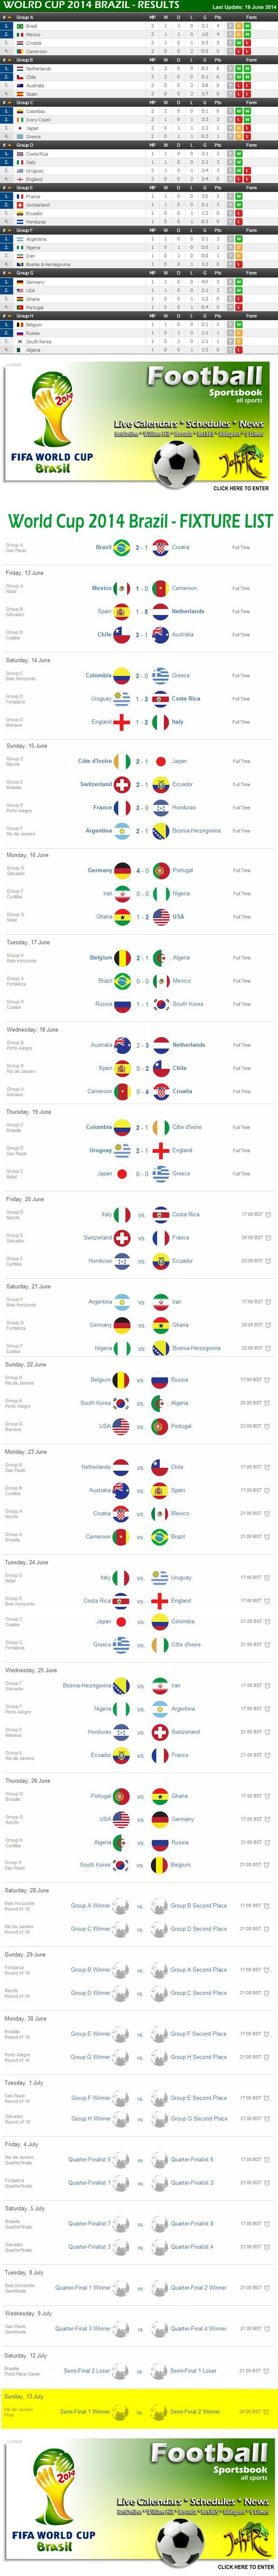 FIFA World Cup 2014 NEWS!! Results * Schedule with all games of the World Cup 2014 Brazil in PDF PDF Download - Size 975KB http://www.top1hits.com/ap/mysp.php?id=105 *** #worldcup #FIFAworldCUP #ScheduleWorldCup #sportsbook #news #sportsNews #bettingTips #poker #pokerNews *** CLICK HERE TO ENTER  http://www.top1hits.com/ap/mysp.php?id=105